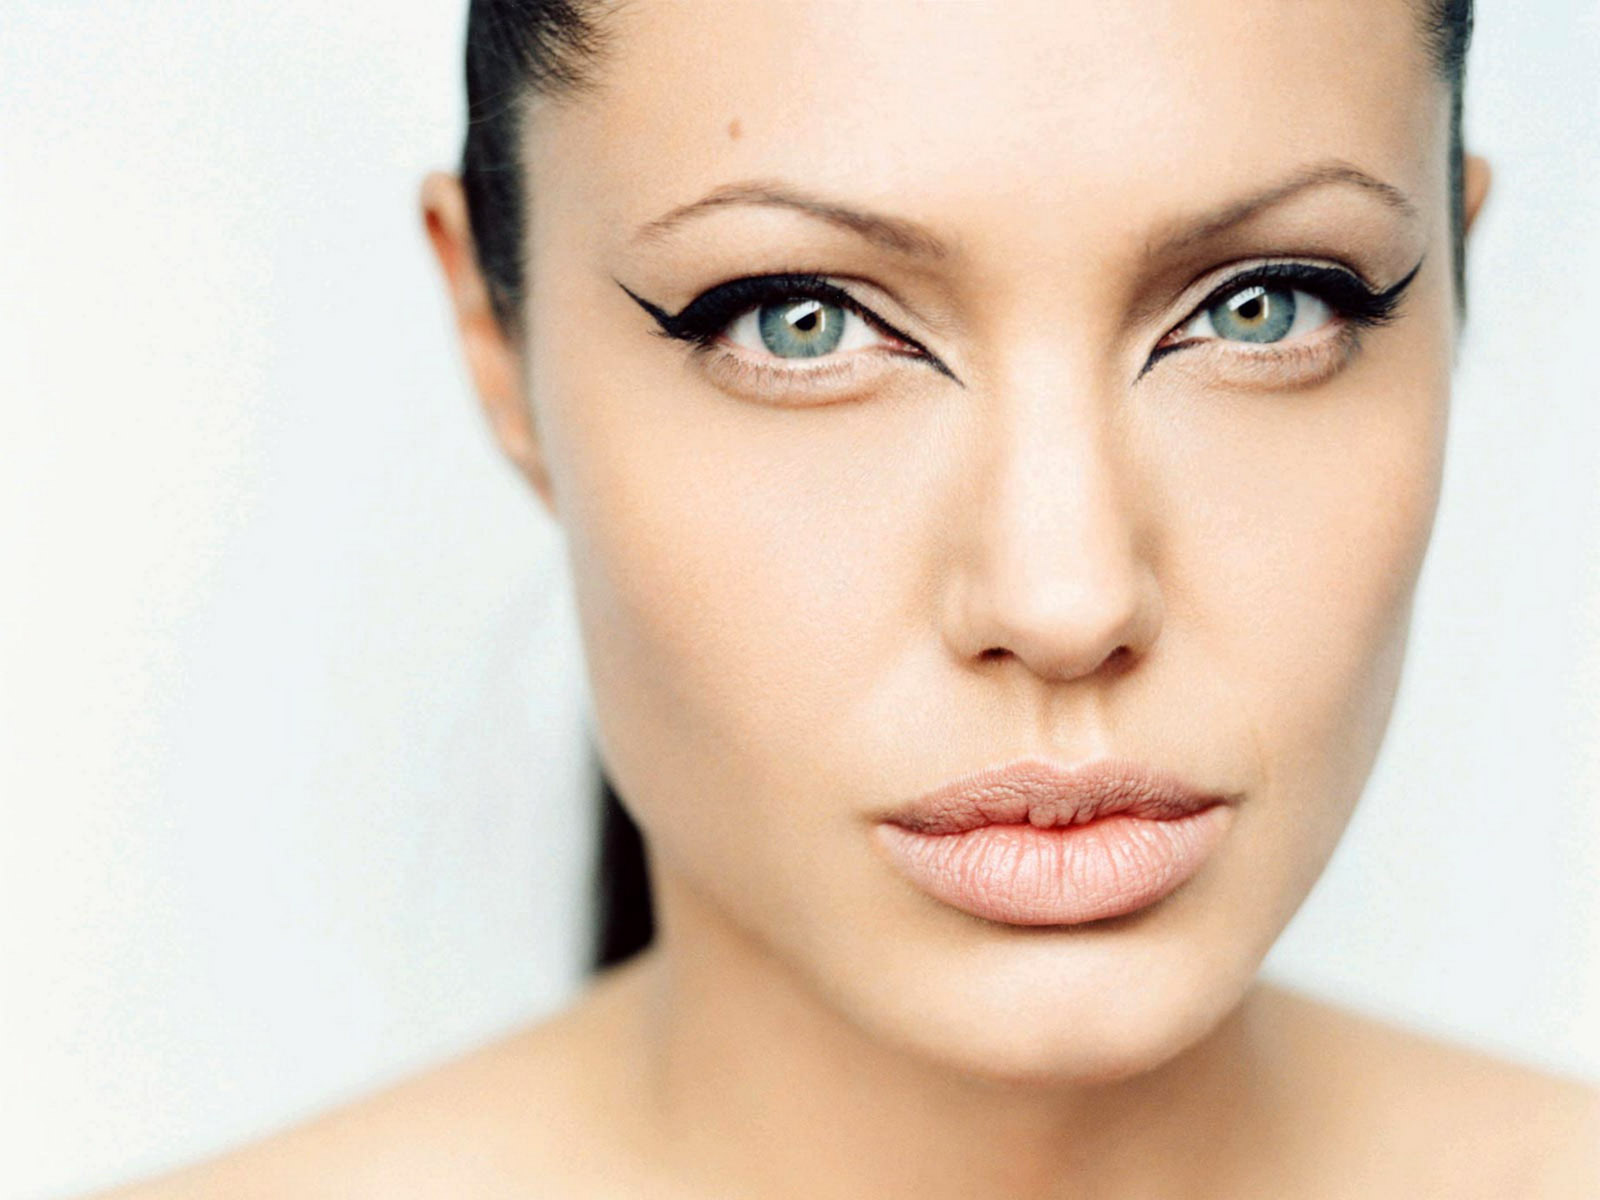 http://4.bp.blogspot.com/-84bjCobB4Oc/T3kXAJPzO9I/AAAAAAAAAG4/GGkJi9HQHCU/s1600/Angelina+Jolie+hot+high+resolution+Wallpapers+(15).jpg